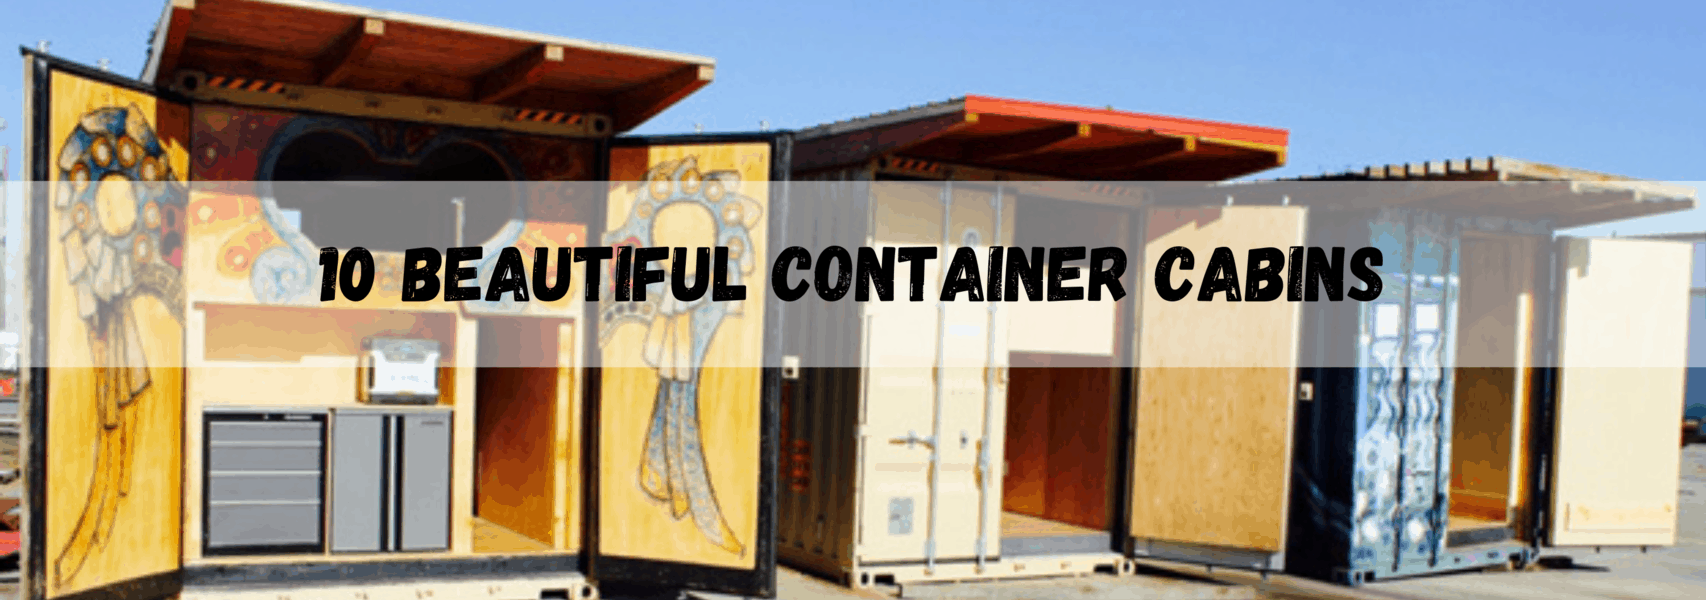 10 Beautiful Shipping Container Cabins